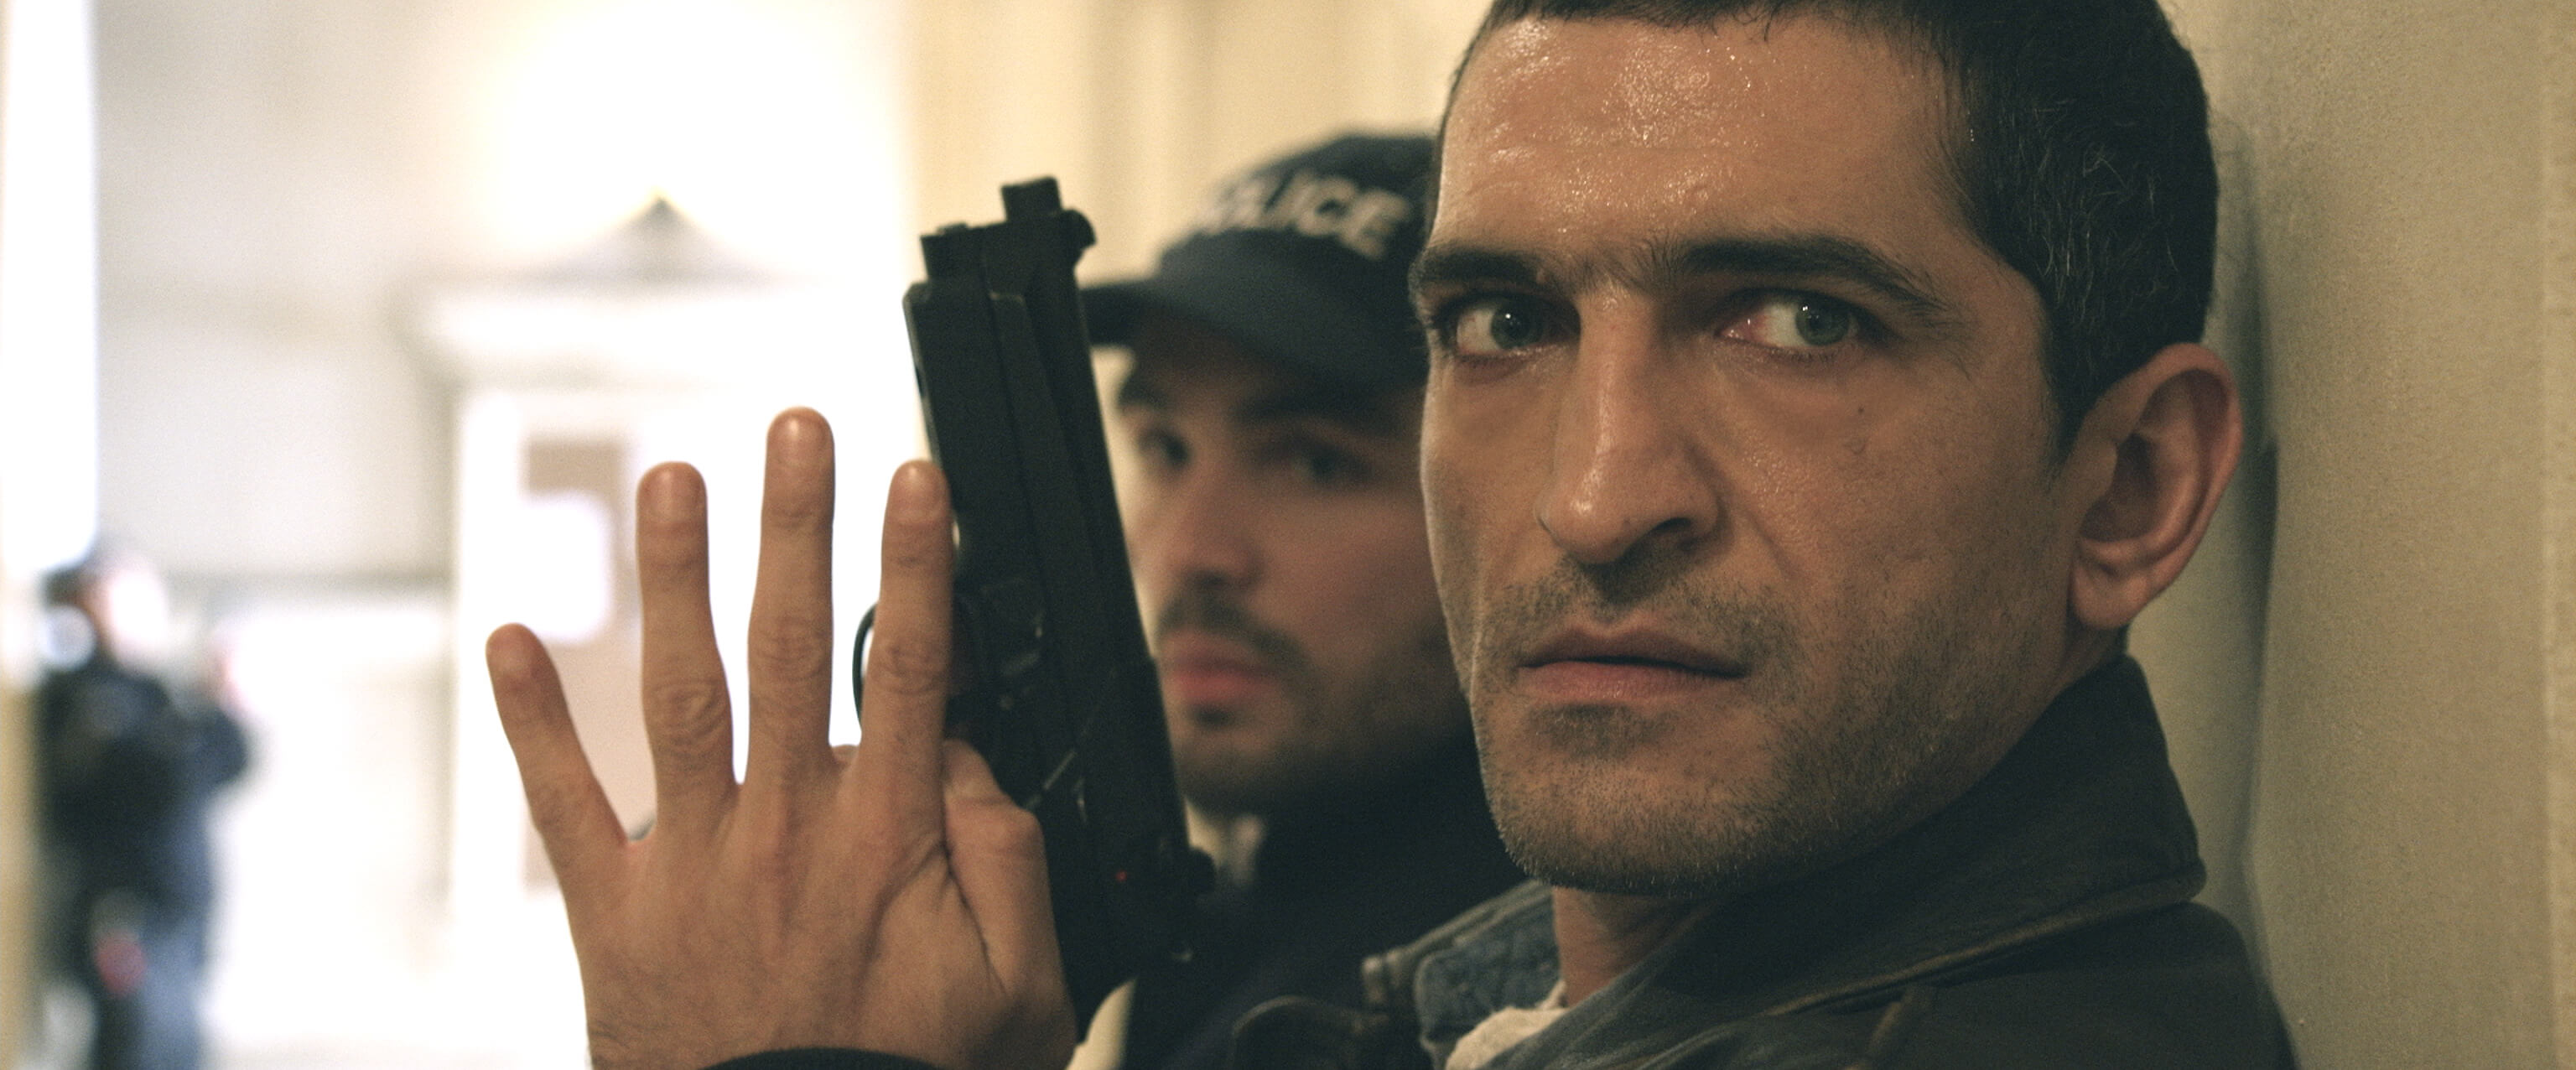 Amr Waked Steps into Geostorm